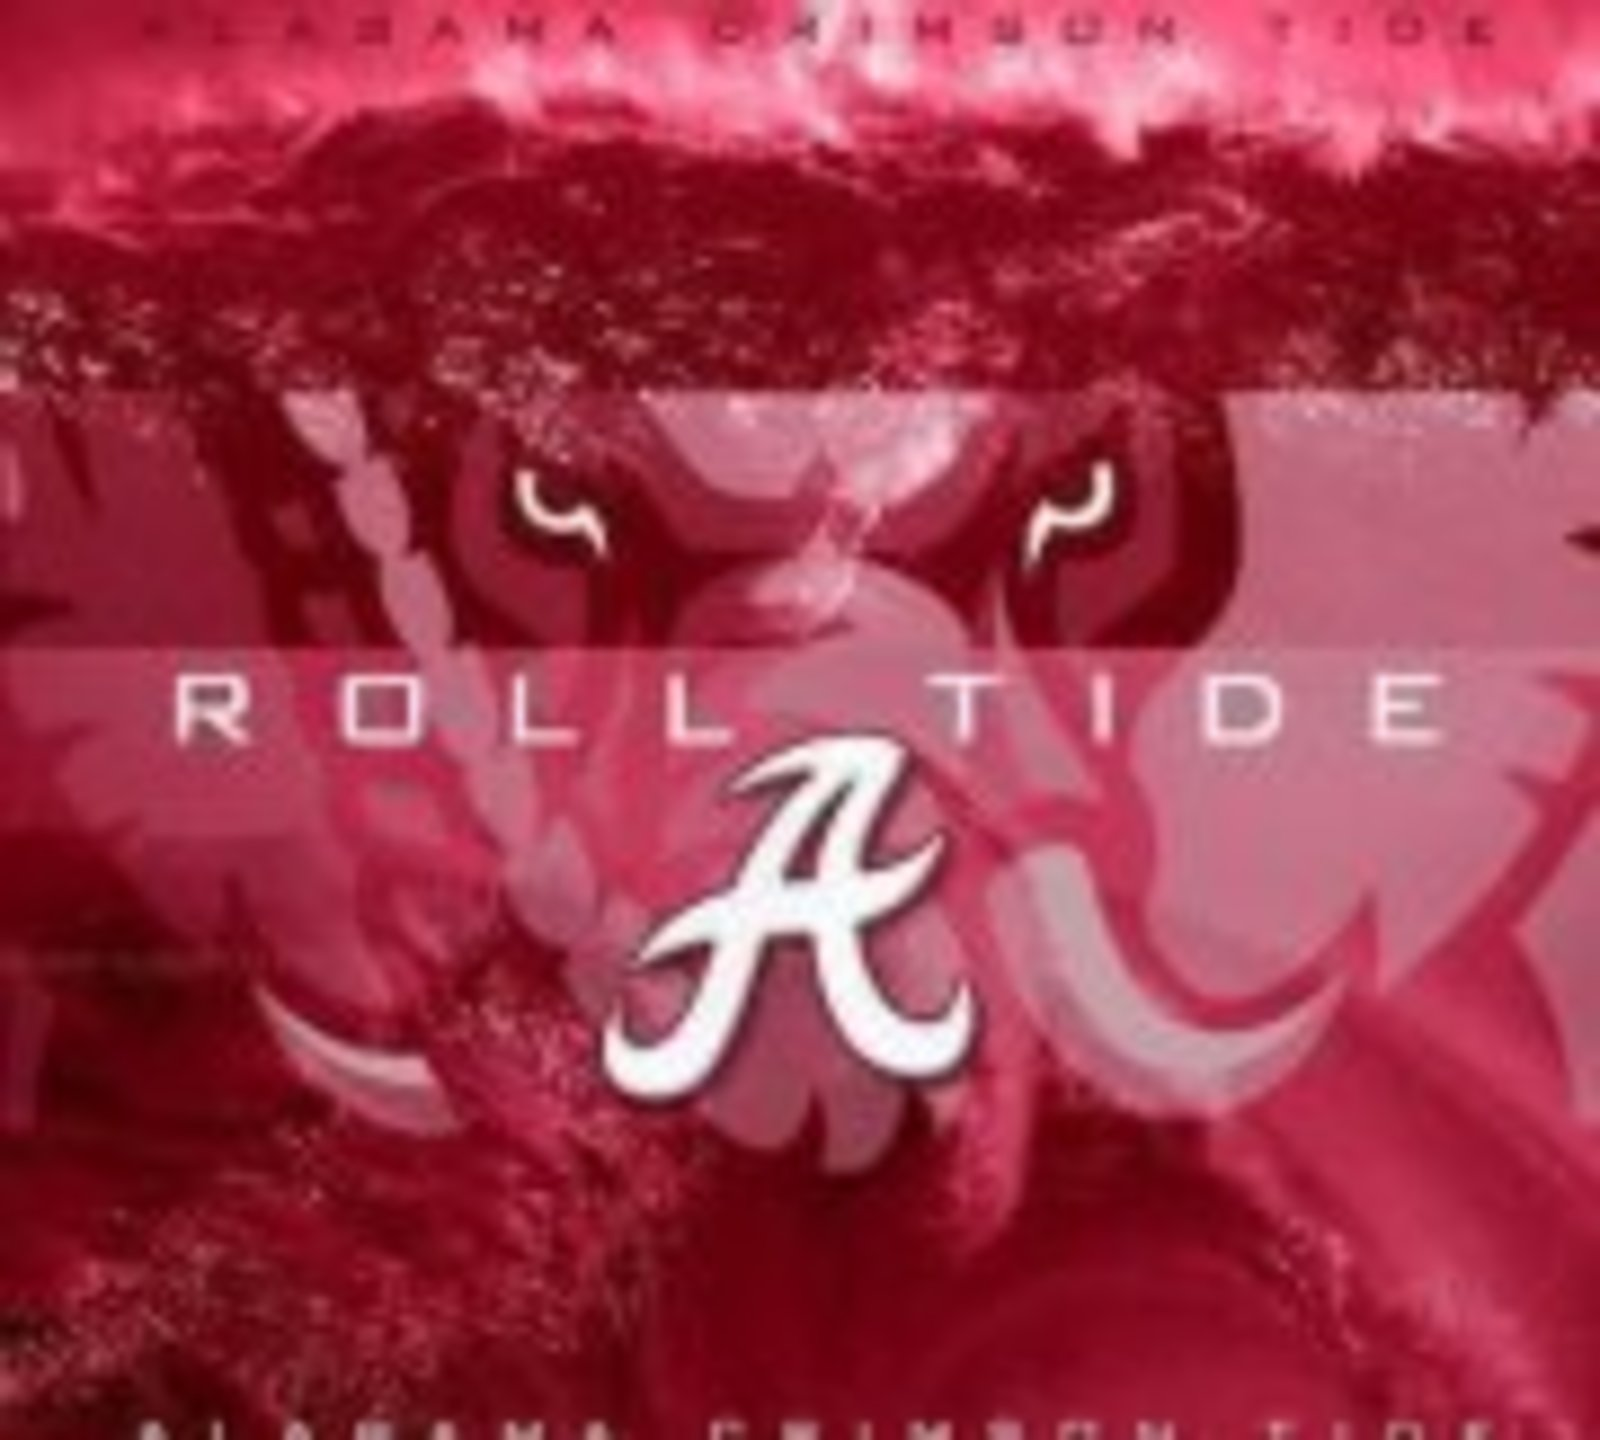 Wonder who is the best team in the country. ROLL TIDE ROLL!!! | by Roger Hopper